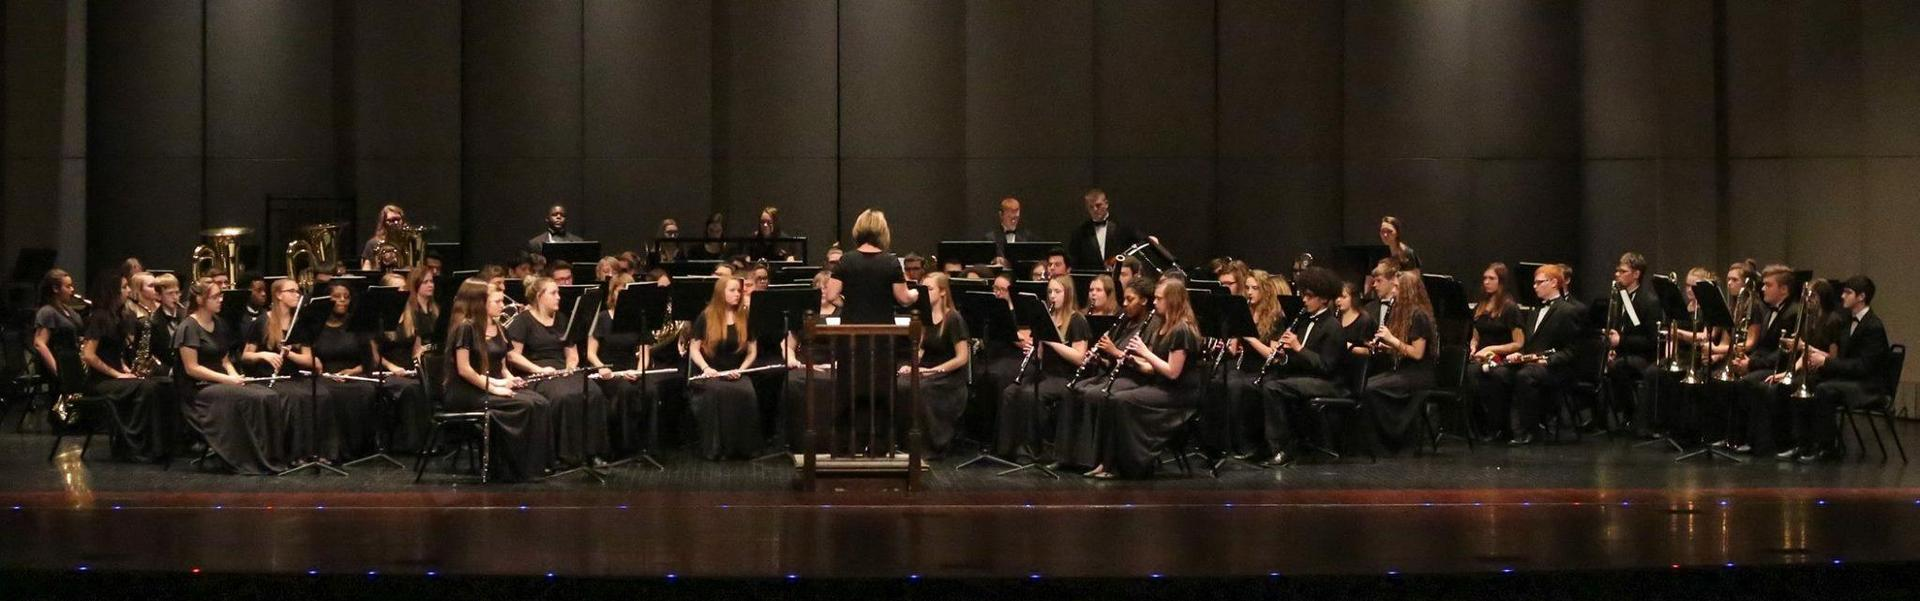 CHS Concert Band at Band Festival 2018